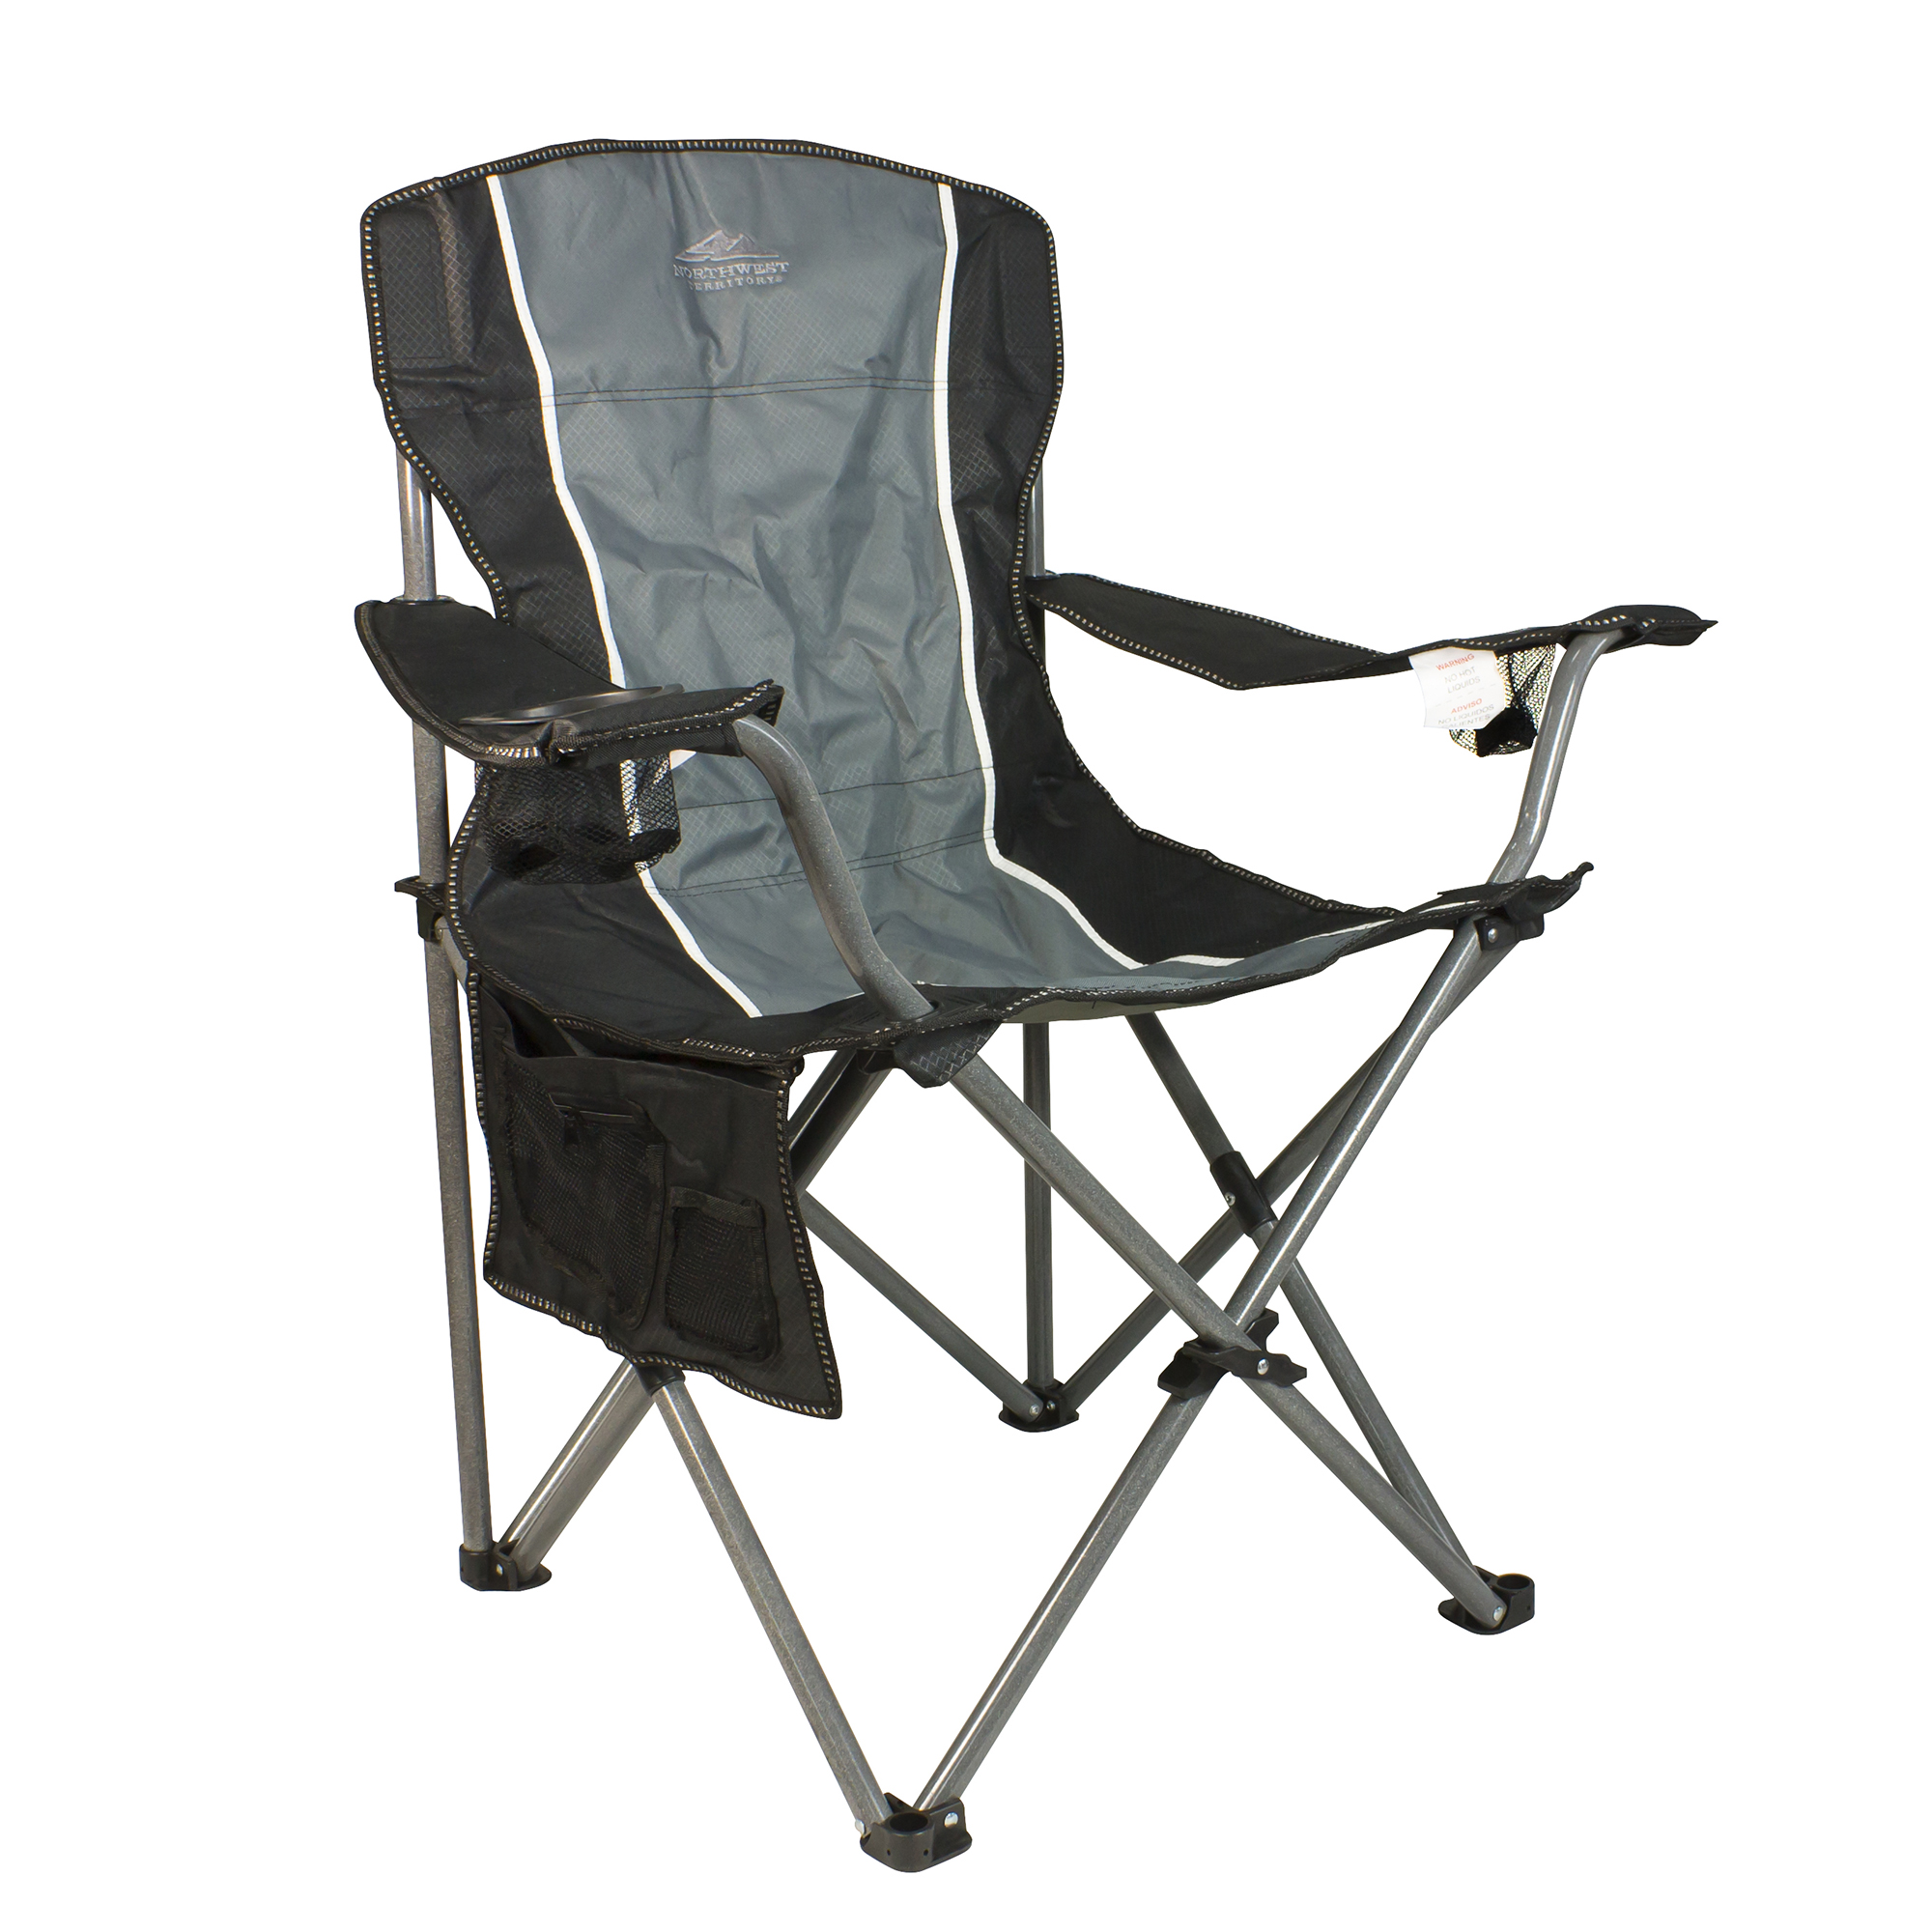 baby camp chair best cushion for office northwest territory big boy xl